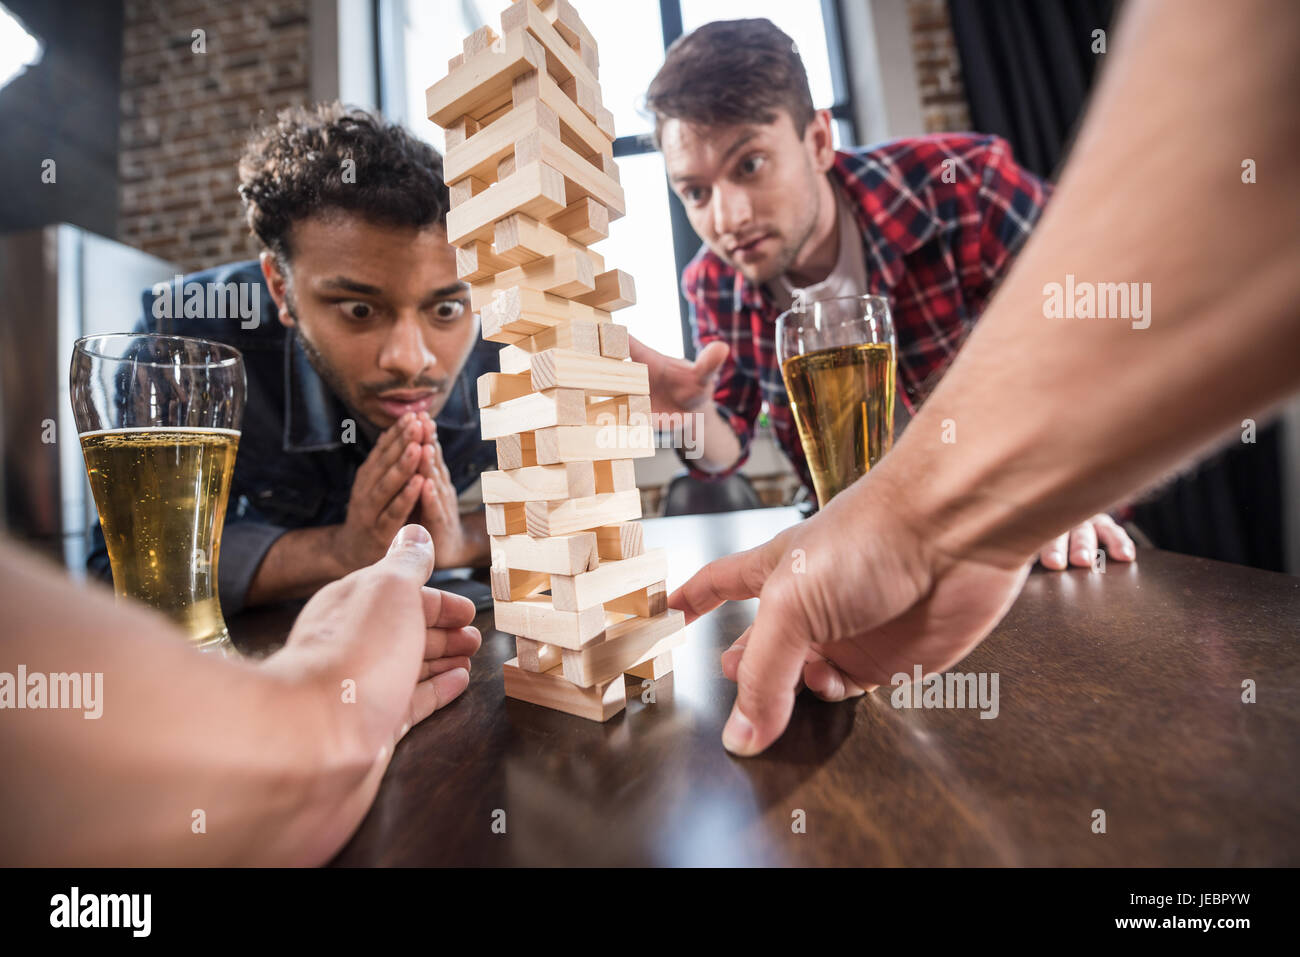 young men drinking beer and playing jenga game. young people having fun concept - Stock Image